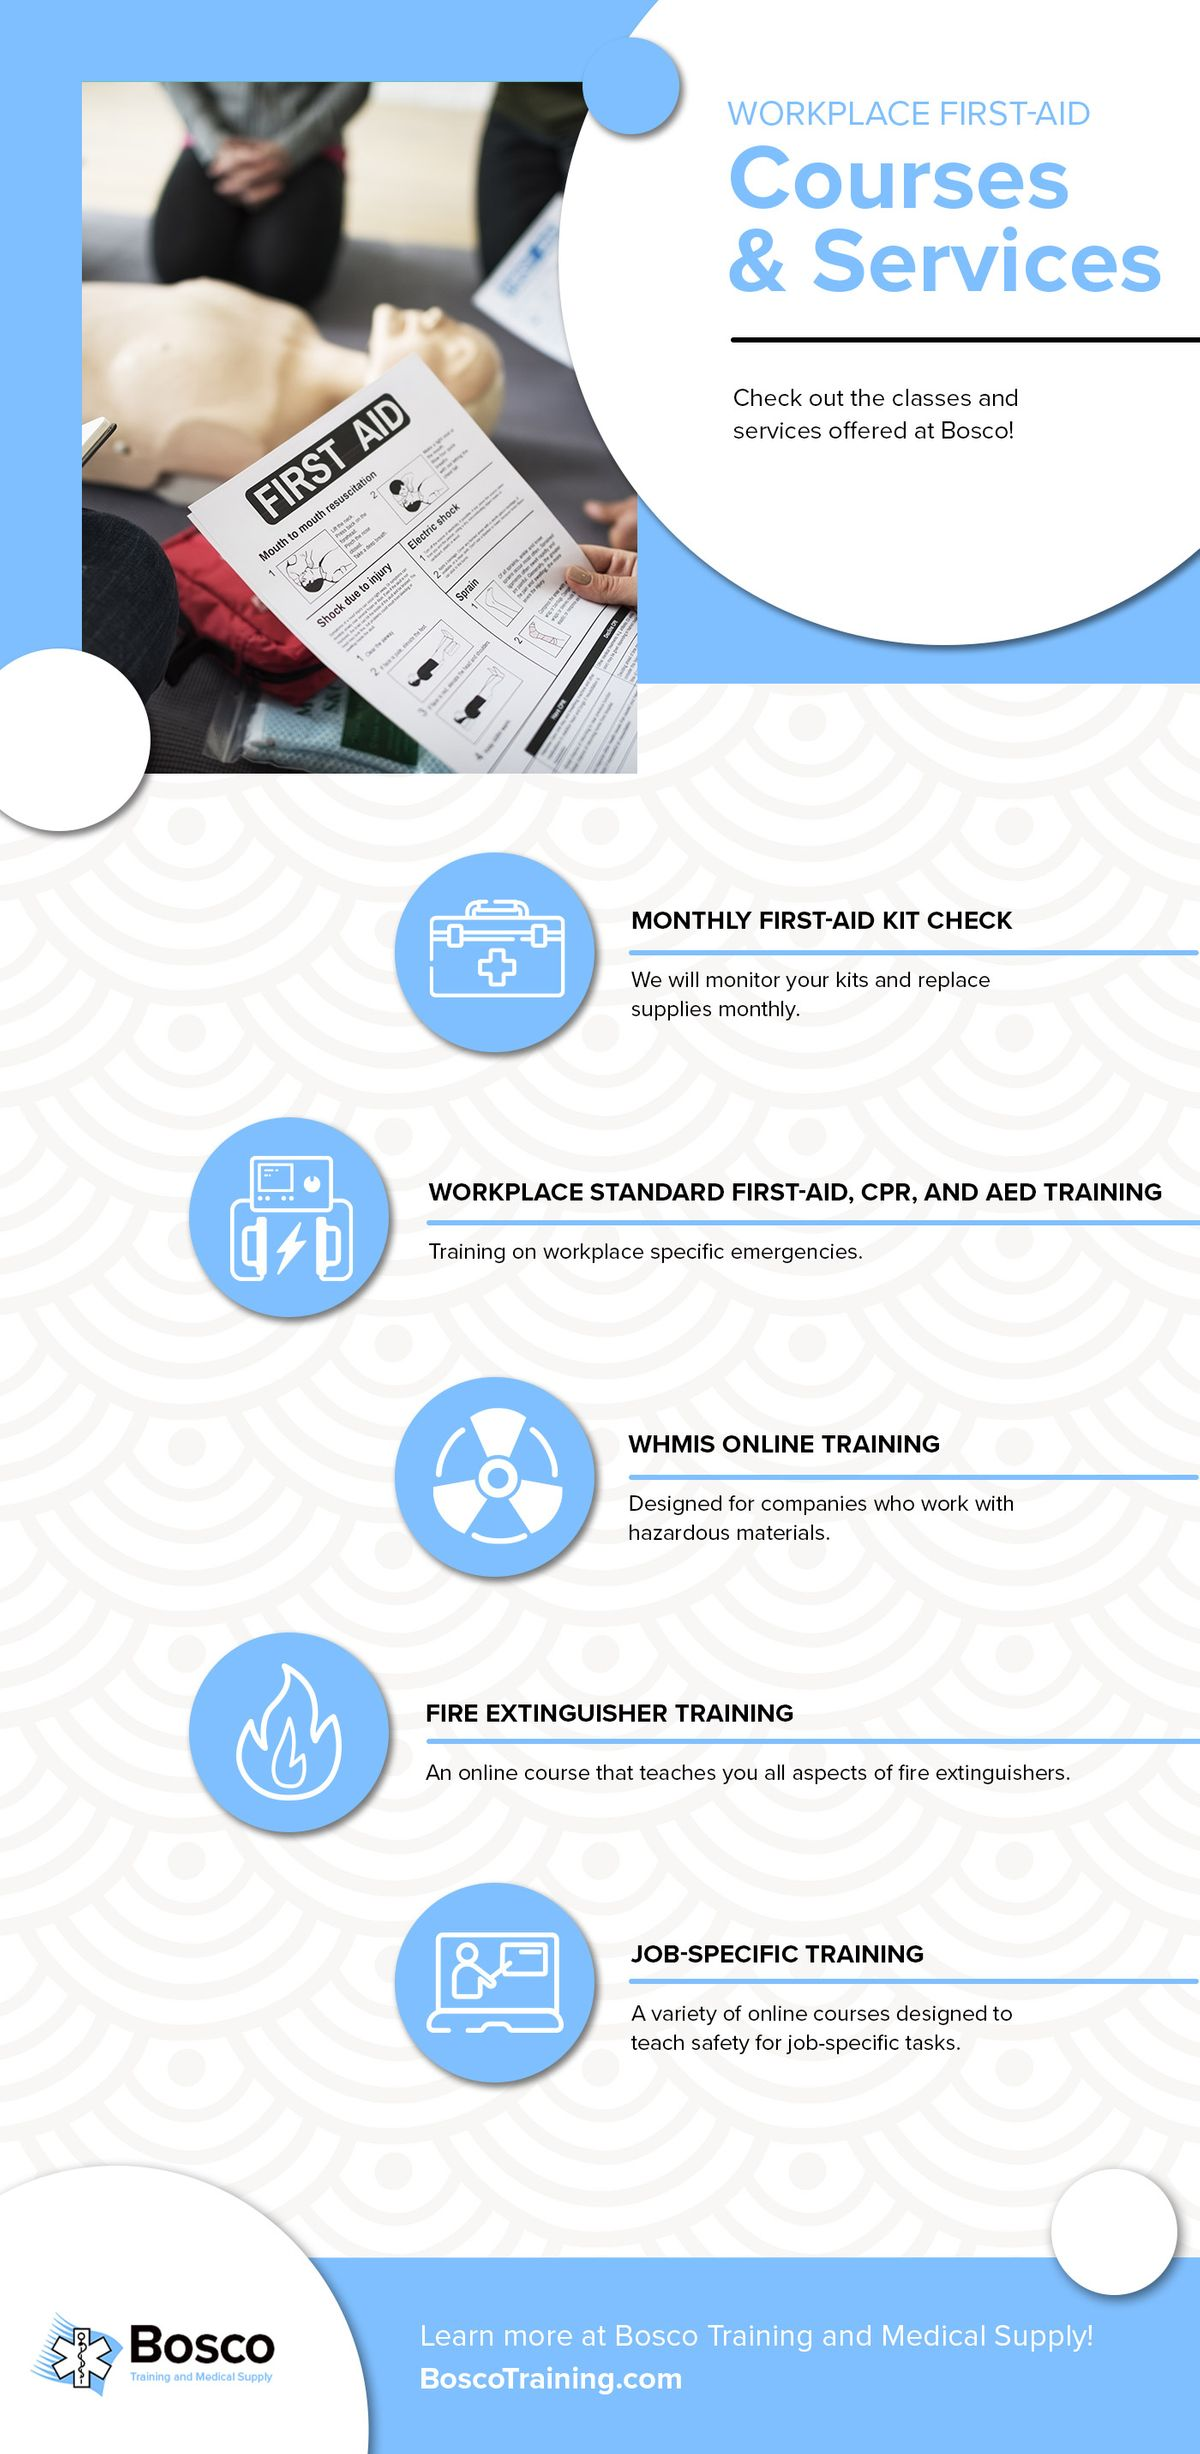 Workplace First-Aid Courses and Services.jpg